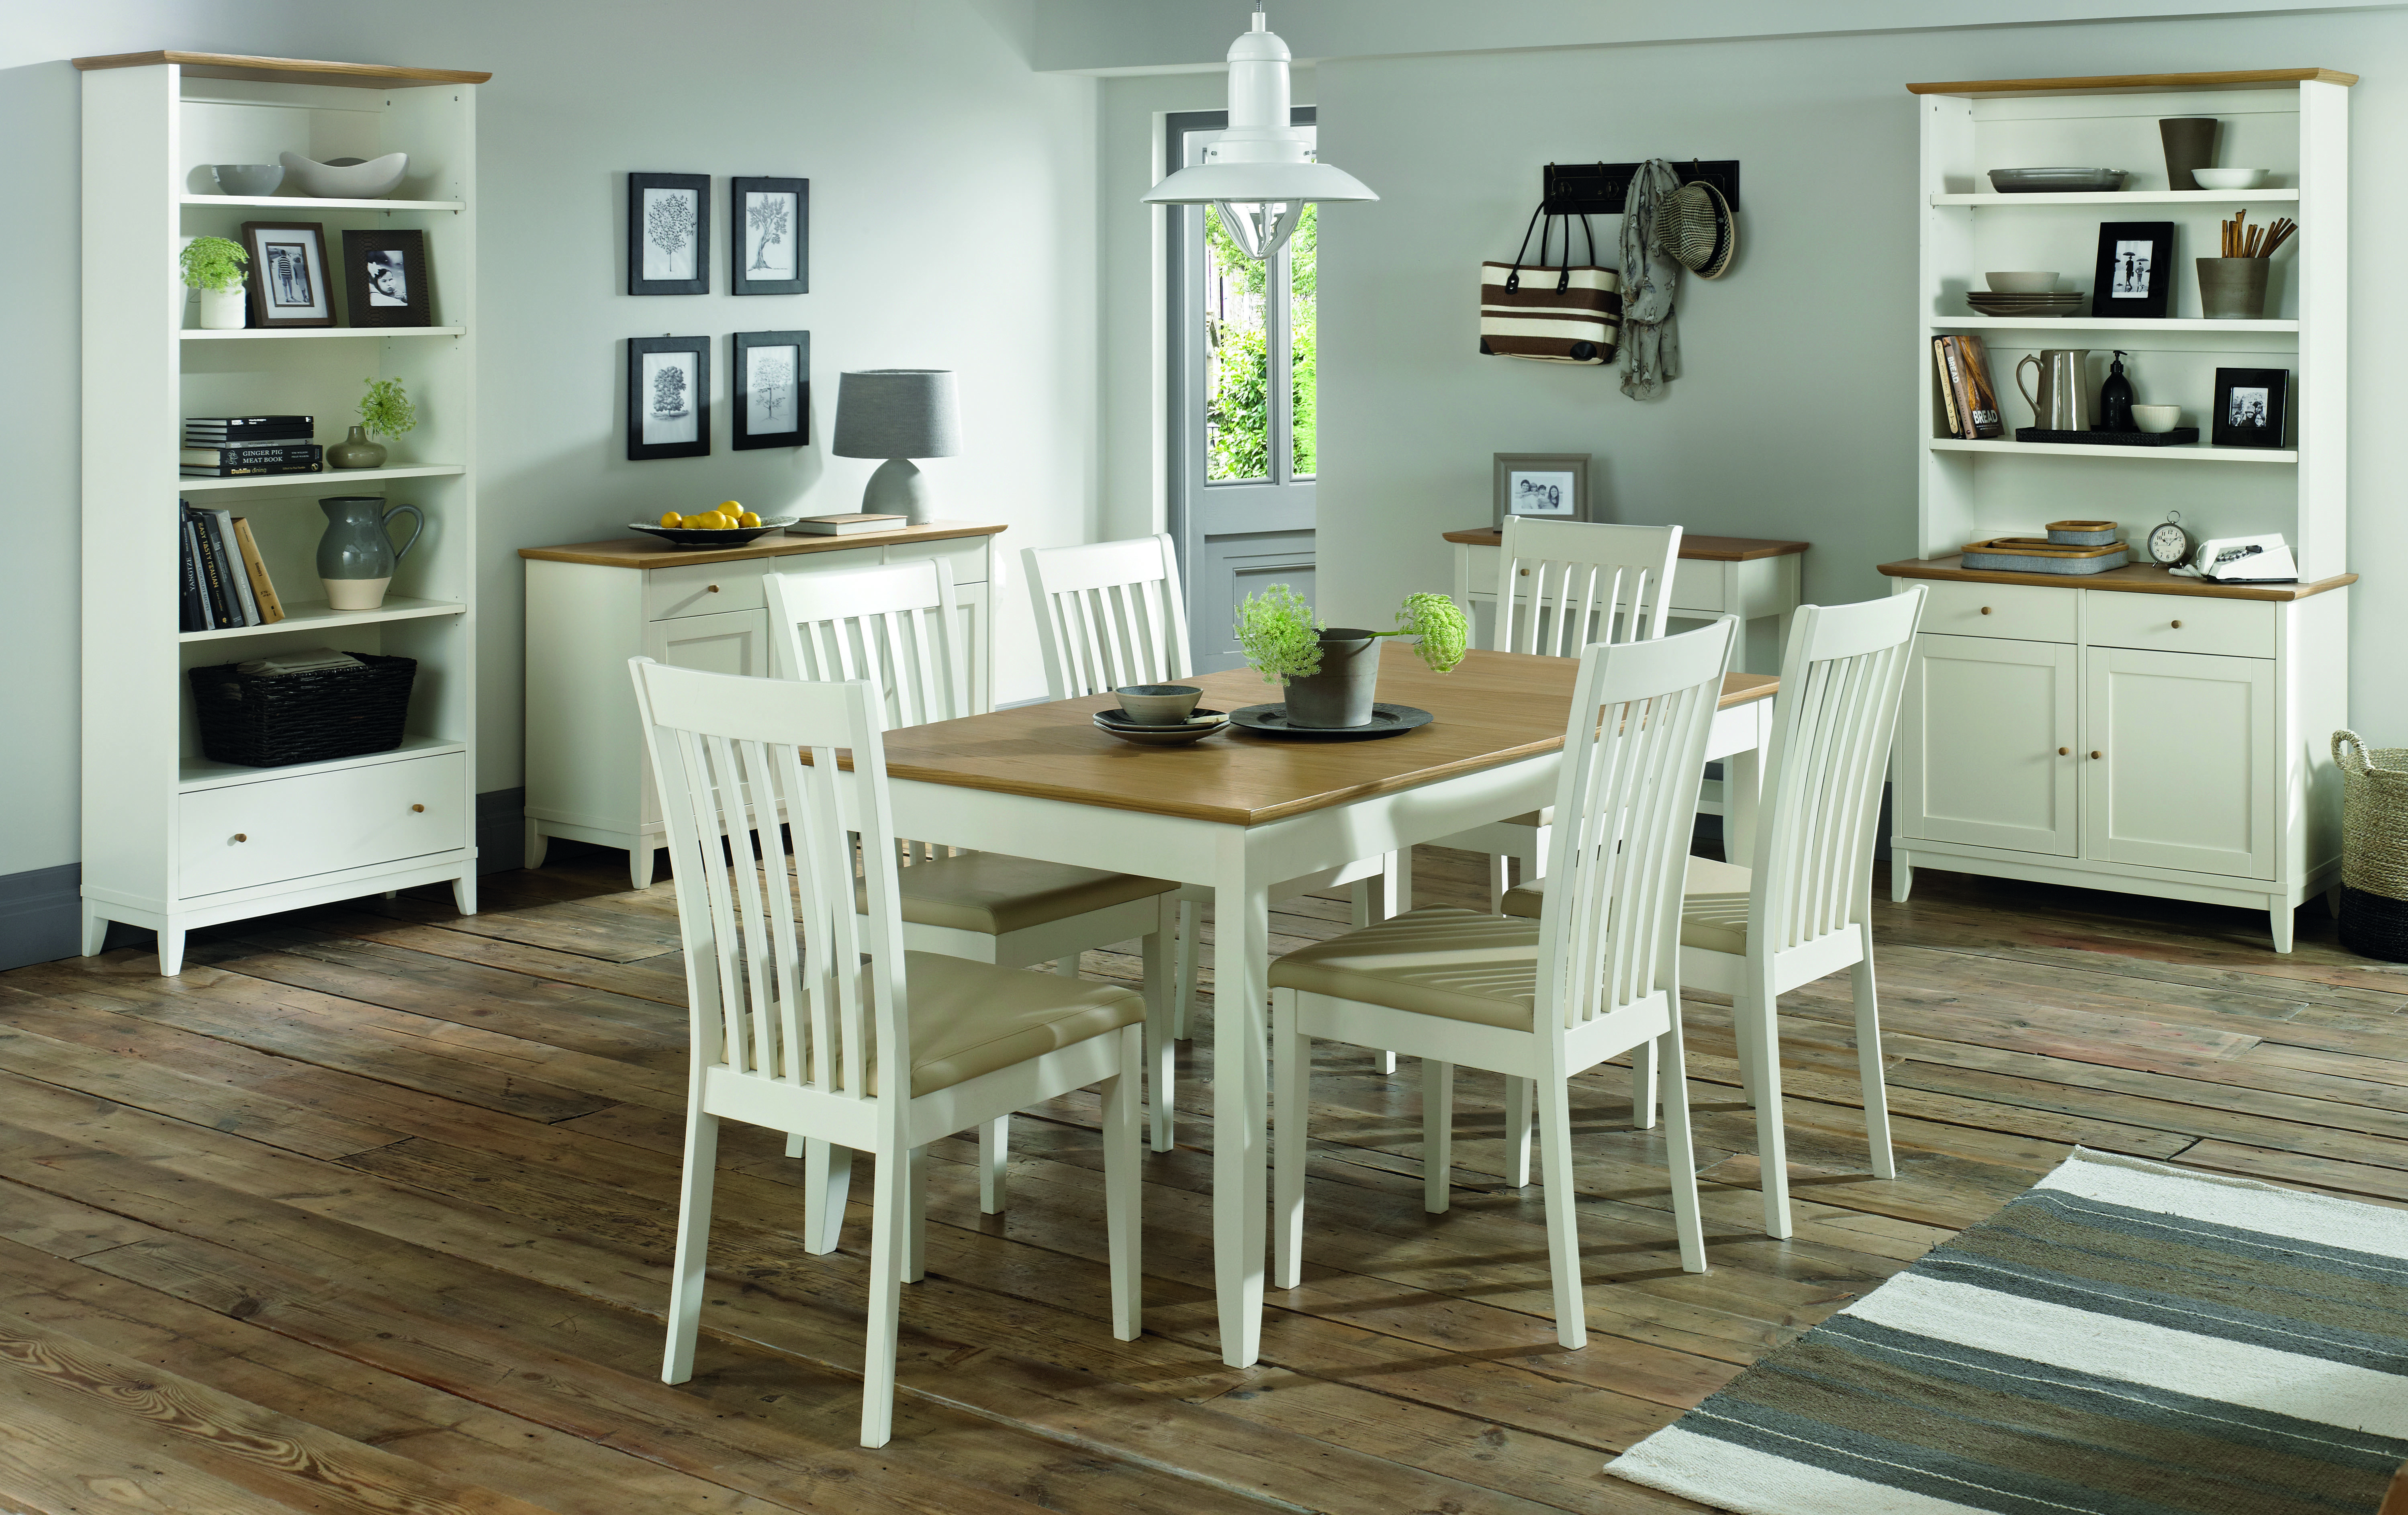 Shaker Two Tone 6-8 Butterfly Extension Dining Table + 6 or 8 Slatted Dining Chairs (8 chairs)